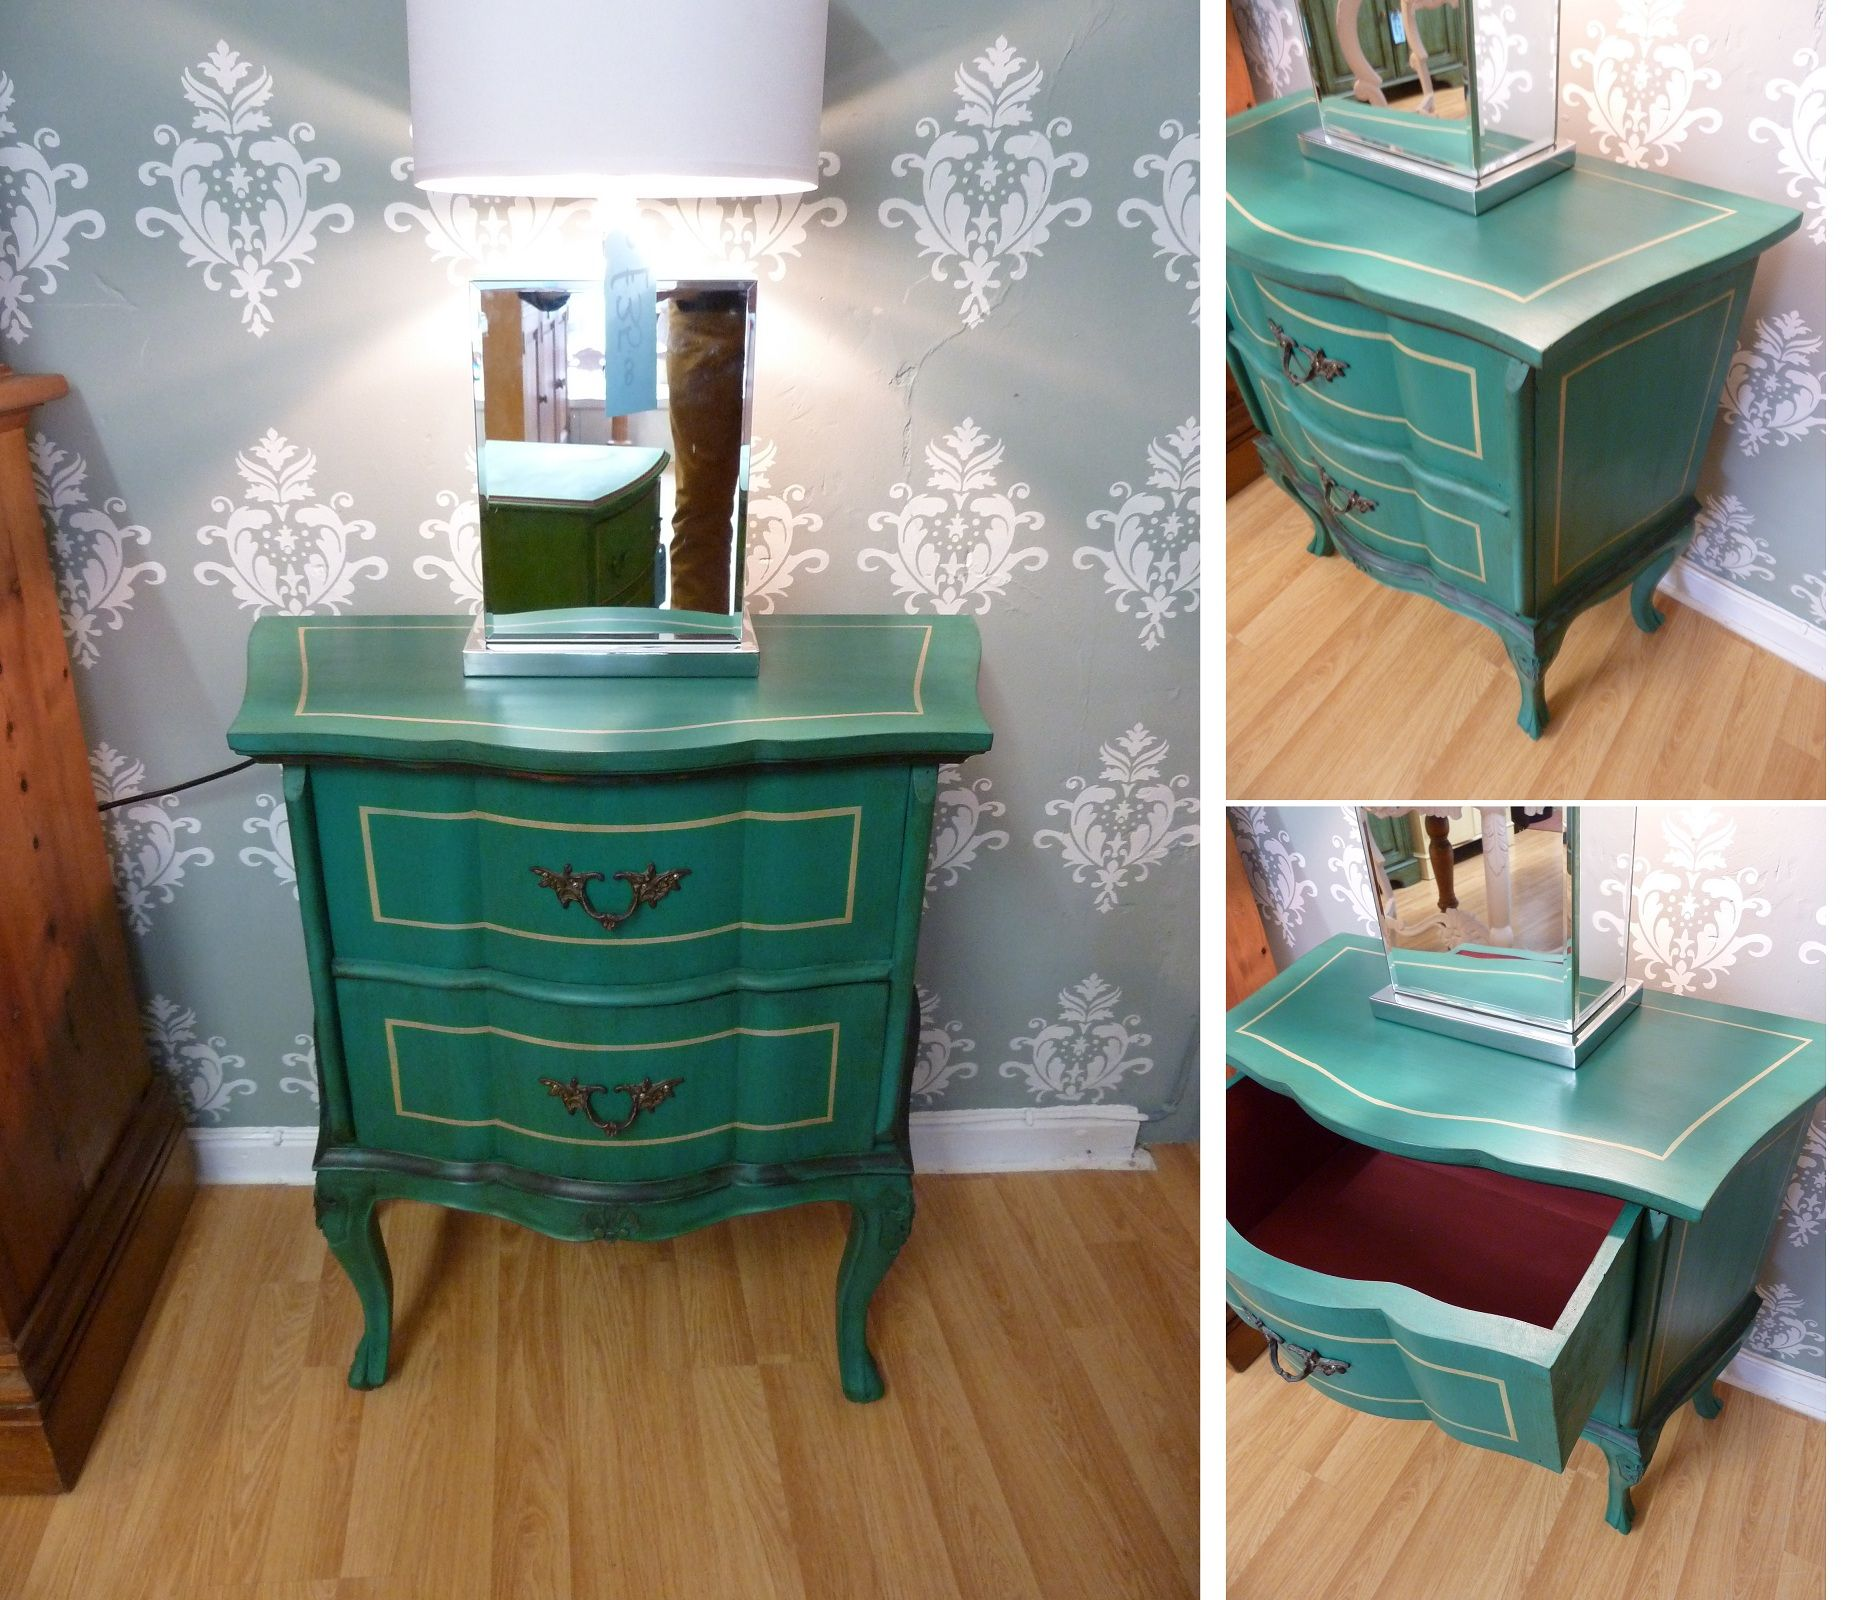 Chalk Paint For Kitchen Cabinets Uk: Vintage French Cabinet Painted With Annie Sloan Chalk